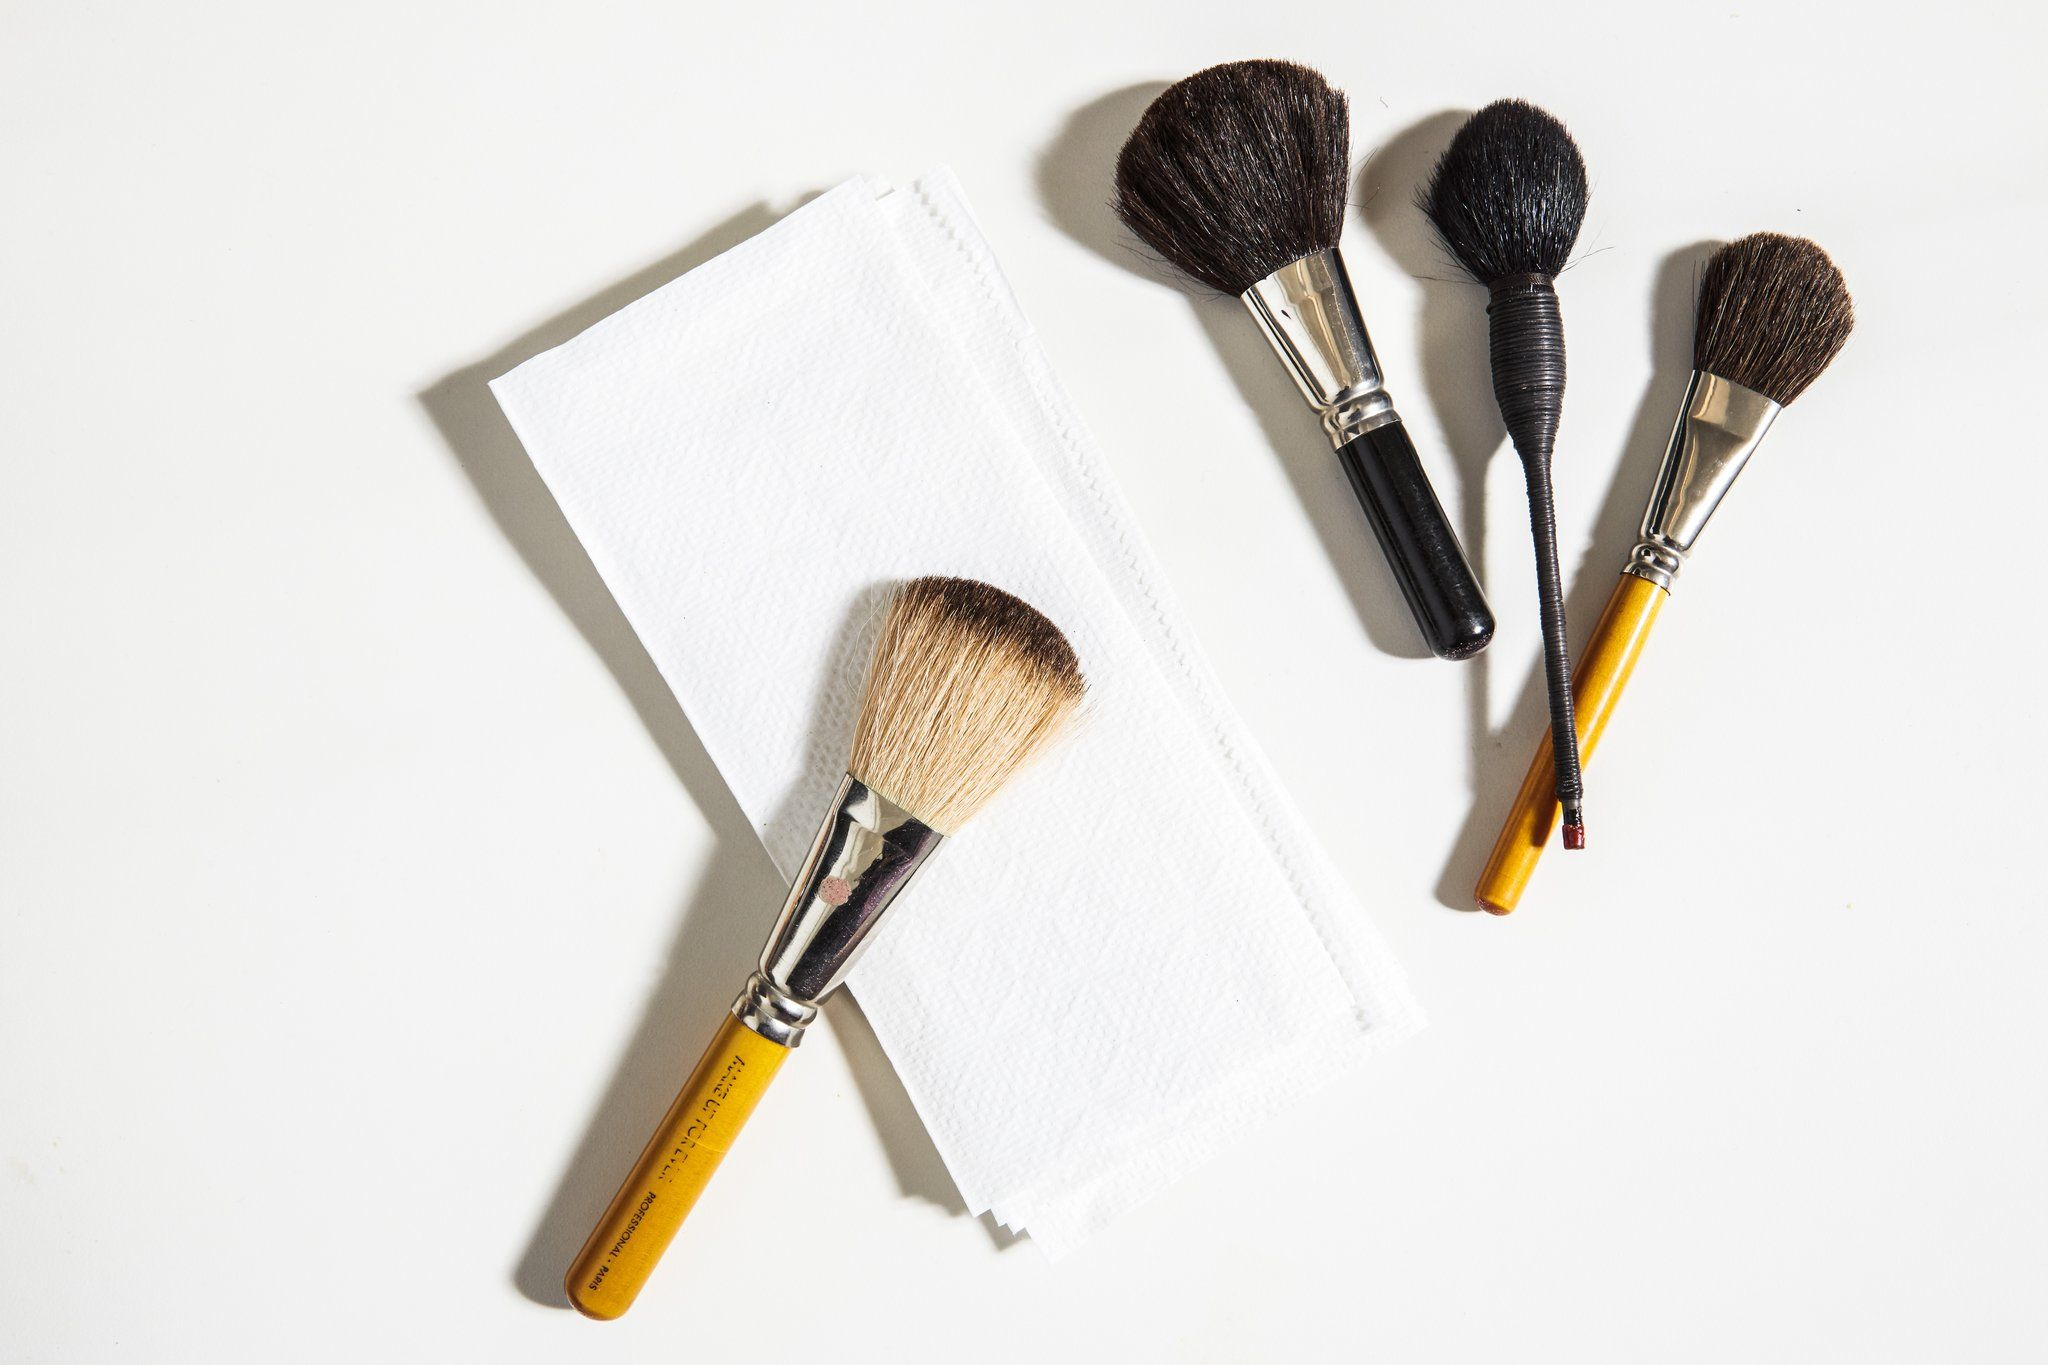 Not cleaning your makeup brushes. Essential makeup